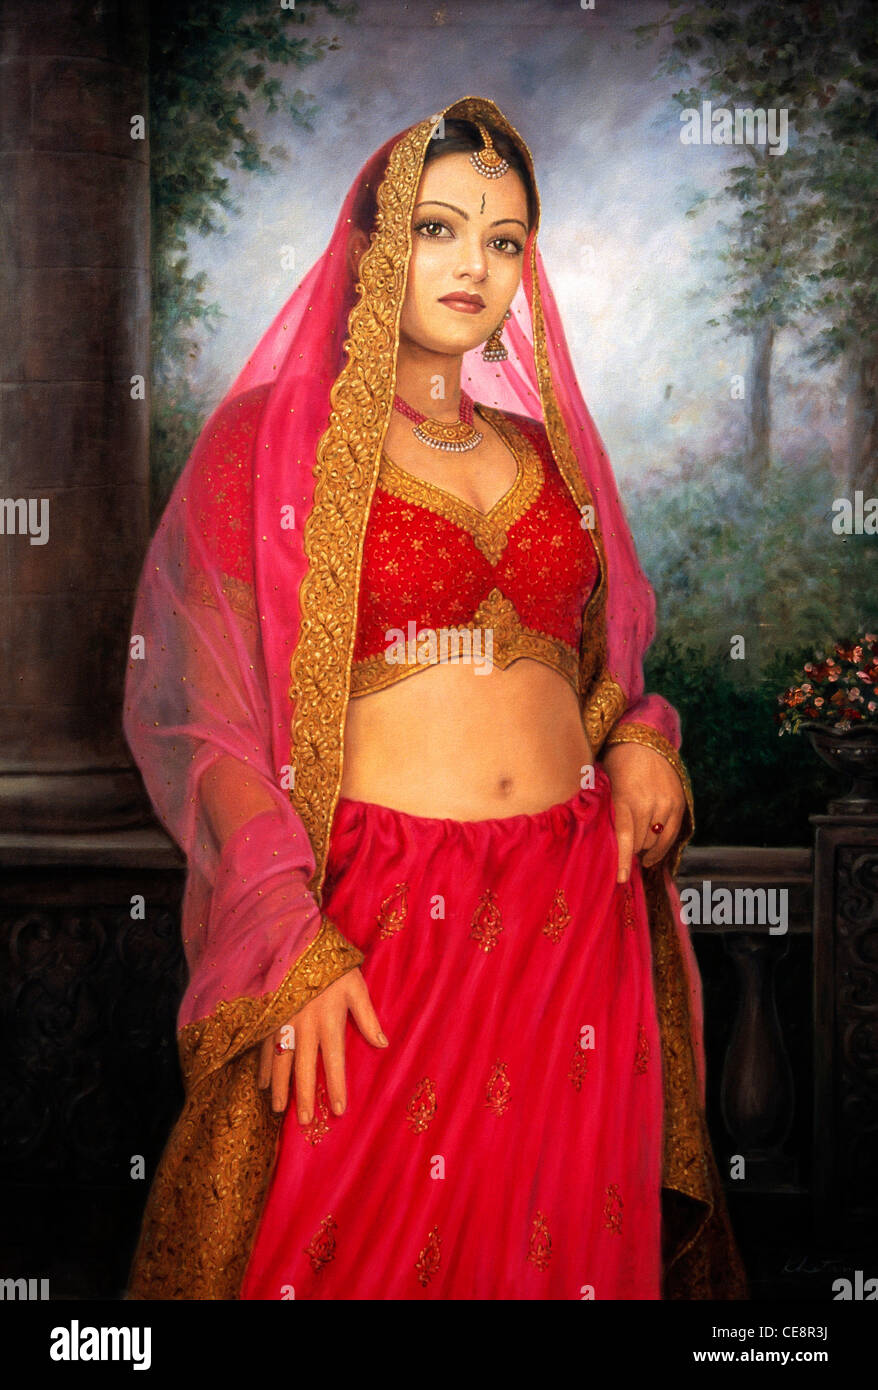 Bdr 80573 Painting Of Indian Women Bride Wearing Marriage